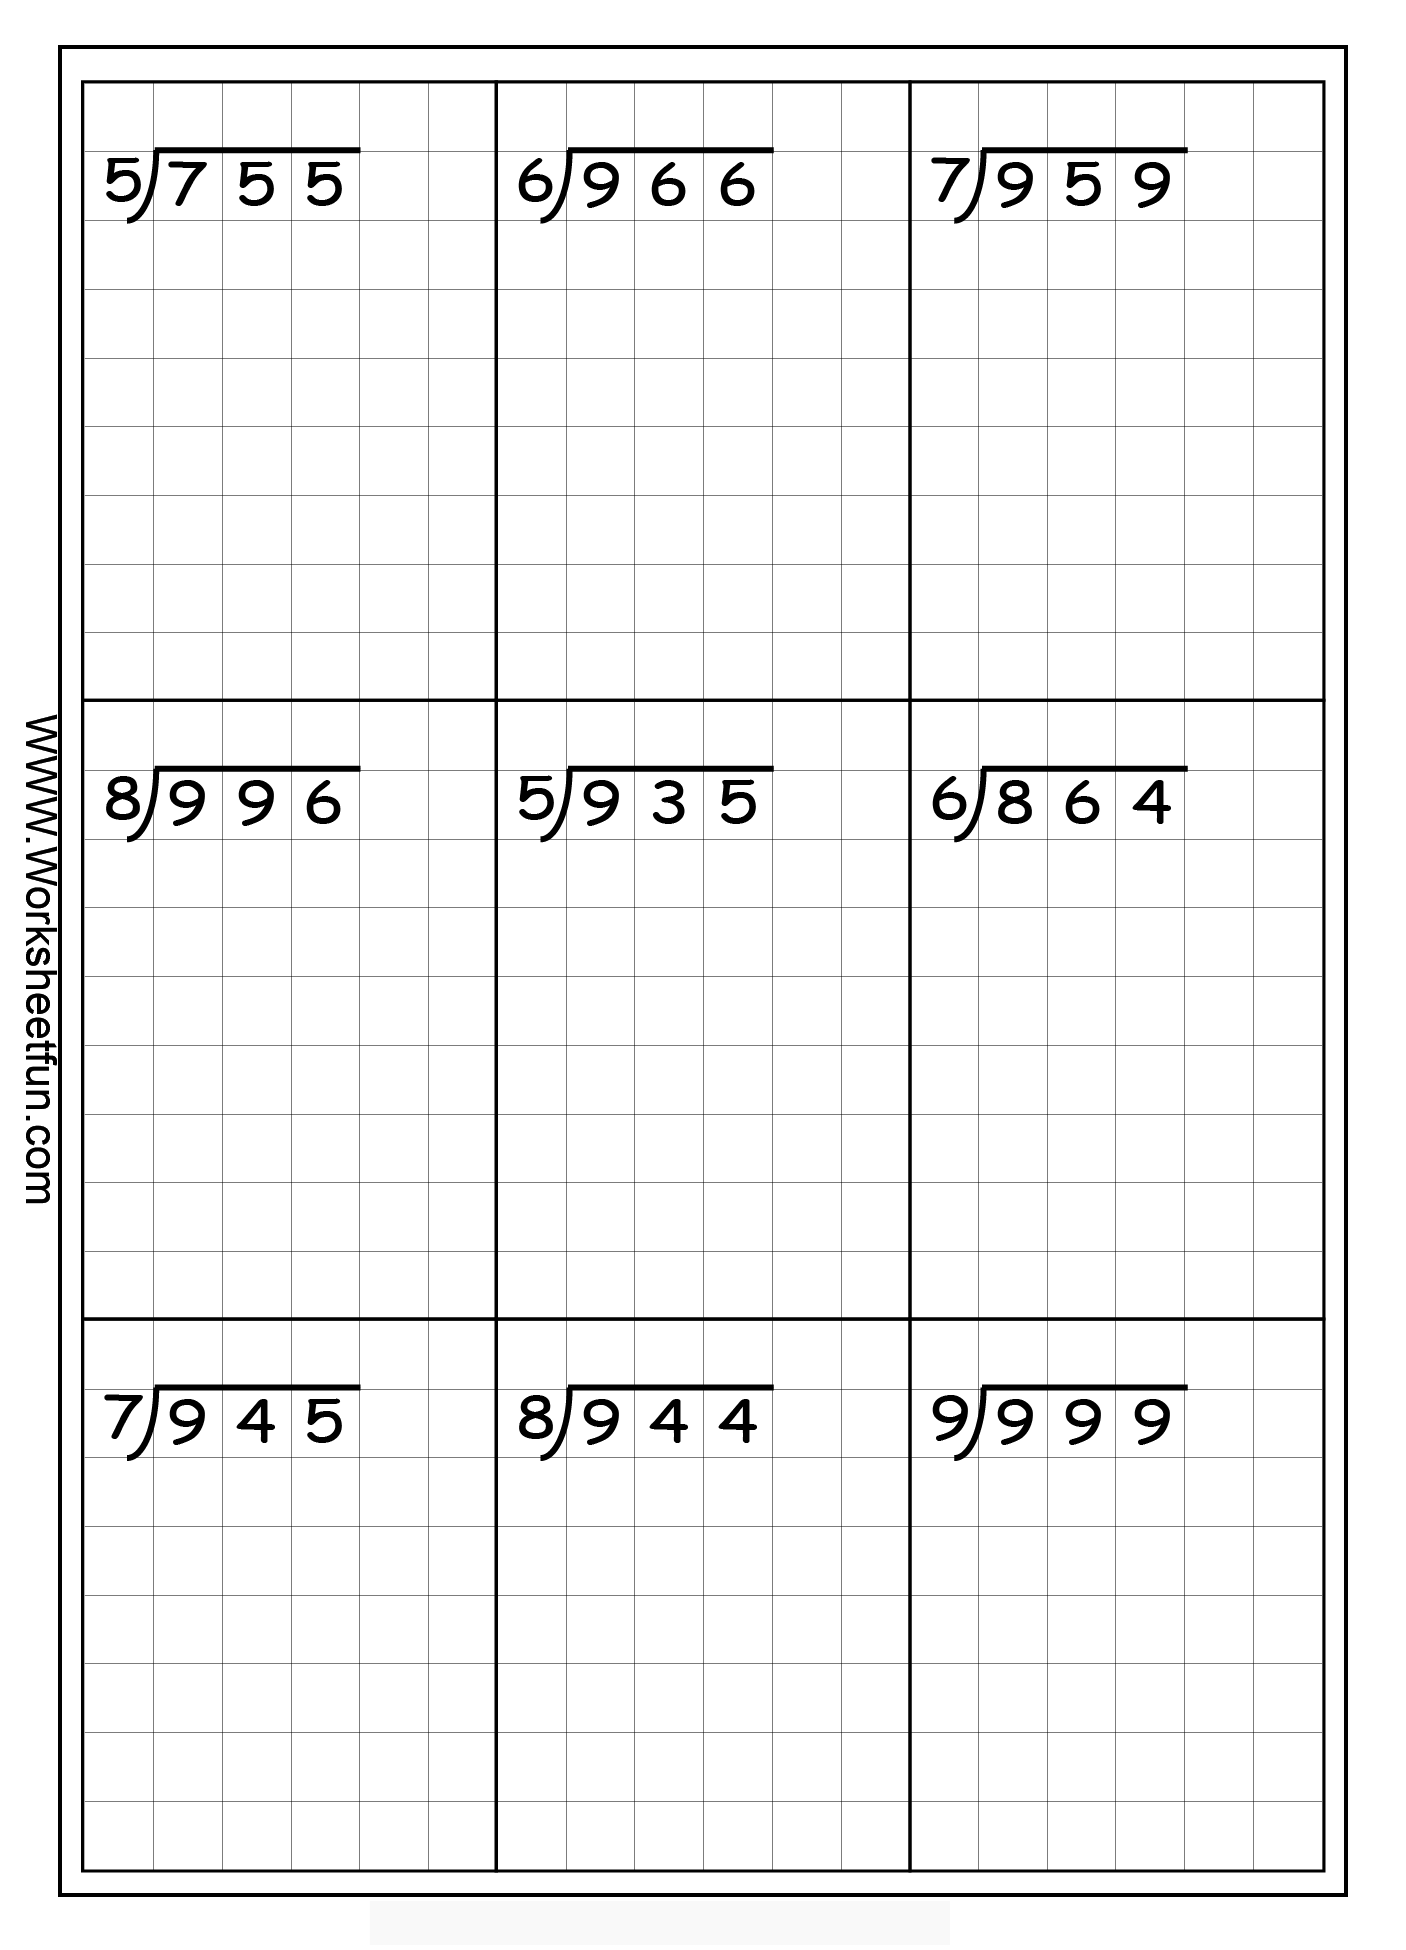 Long Division Worksheet 4Th Grade – Division Worksheets with Remainders 4th Grade